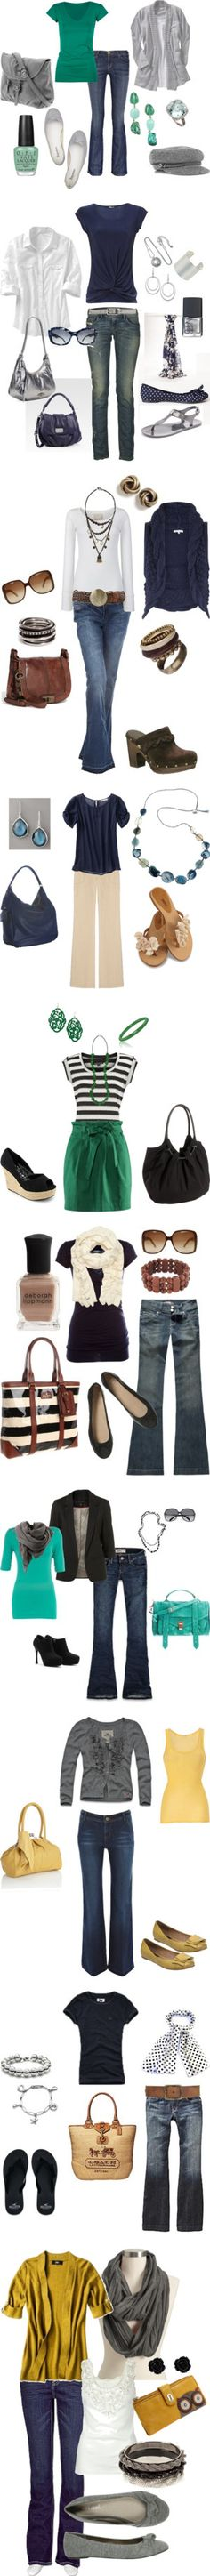 A lot of great items! I luv and would wear them all!